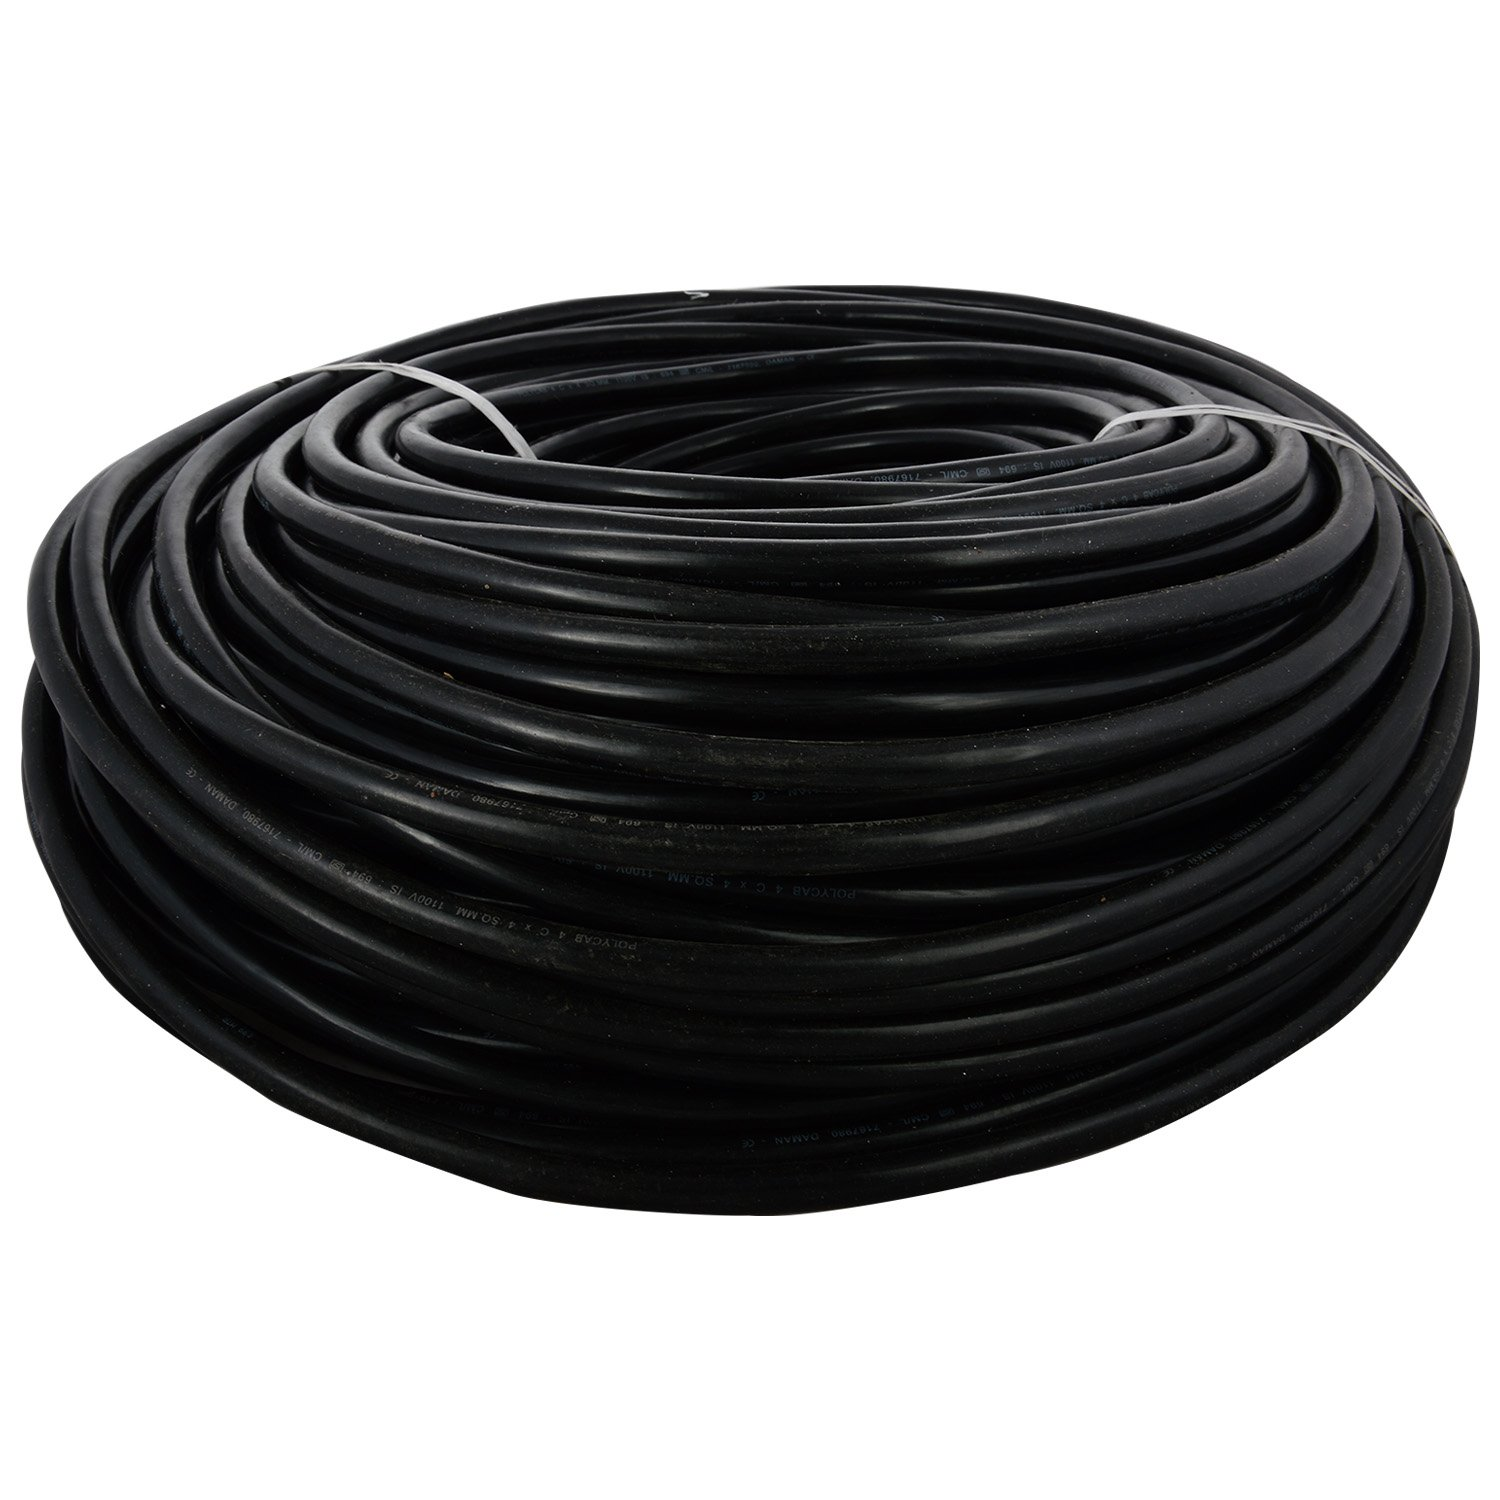 Polycab Pvc Insulated 3 Core Copper Cable 25 Sq Mm Wire Black Wiring Meaning In Hindi 4